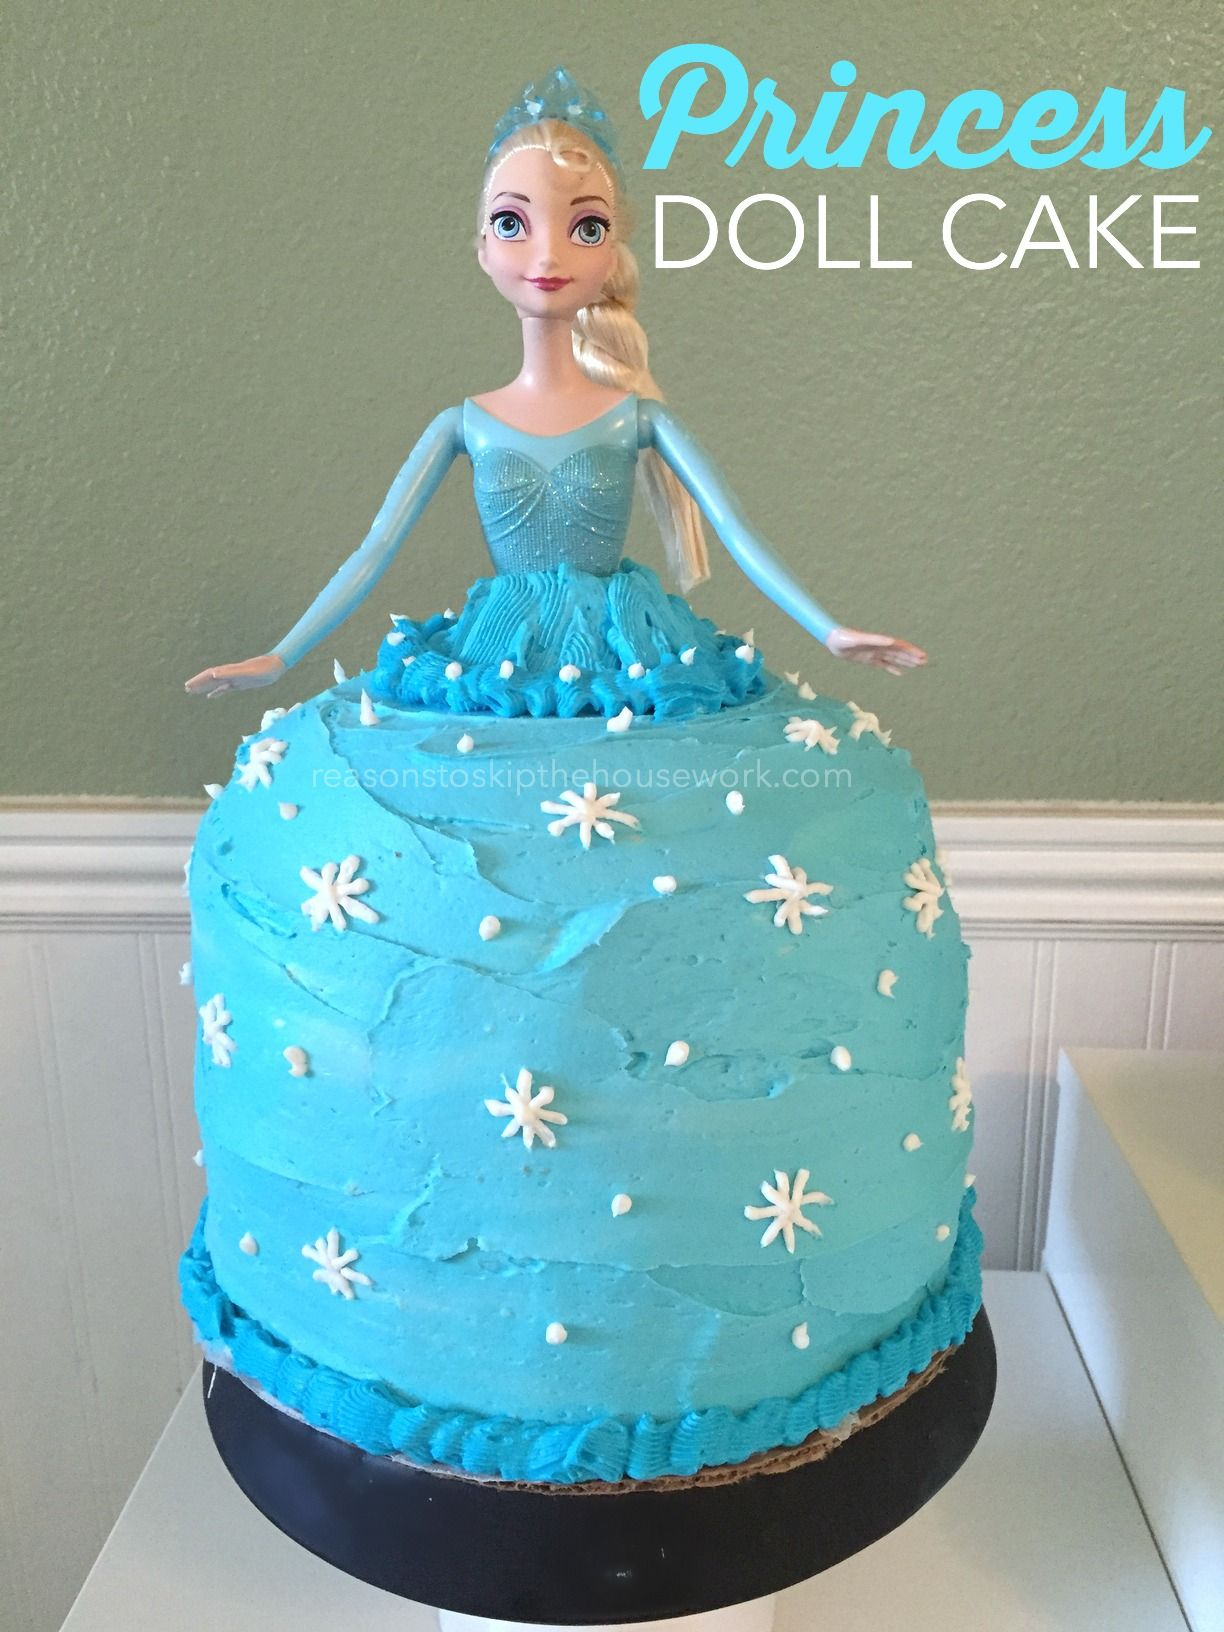 How To Make A Princess Doll Cake And Easy Process That Just Takes